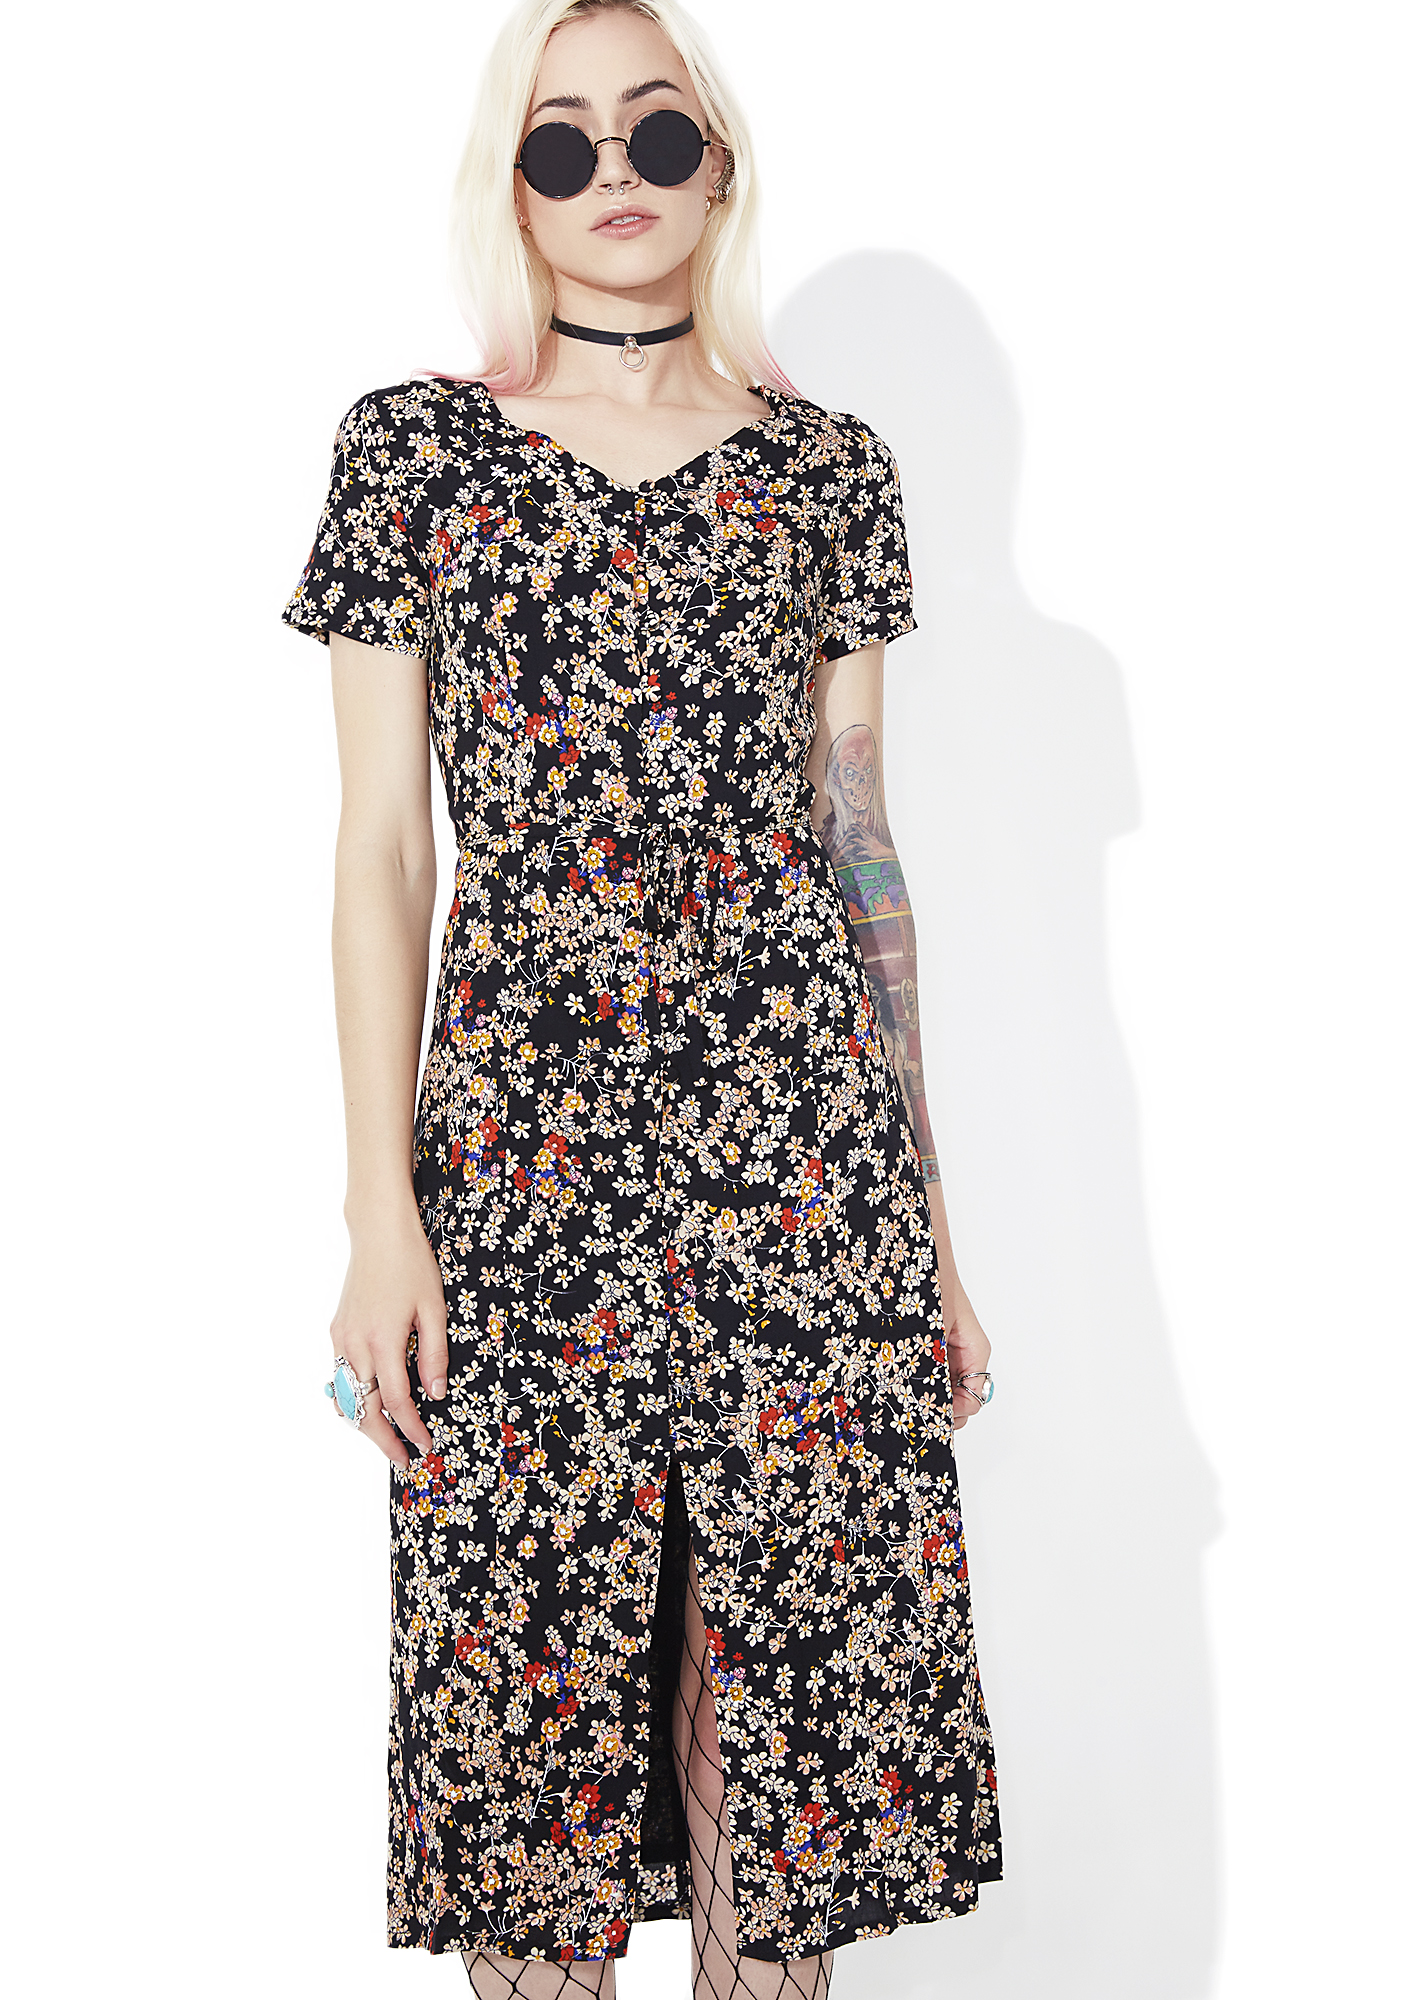 Glamorous Daisy May Buttoned Midi Dress